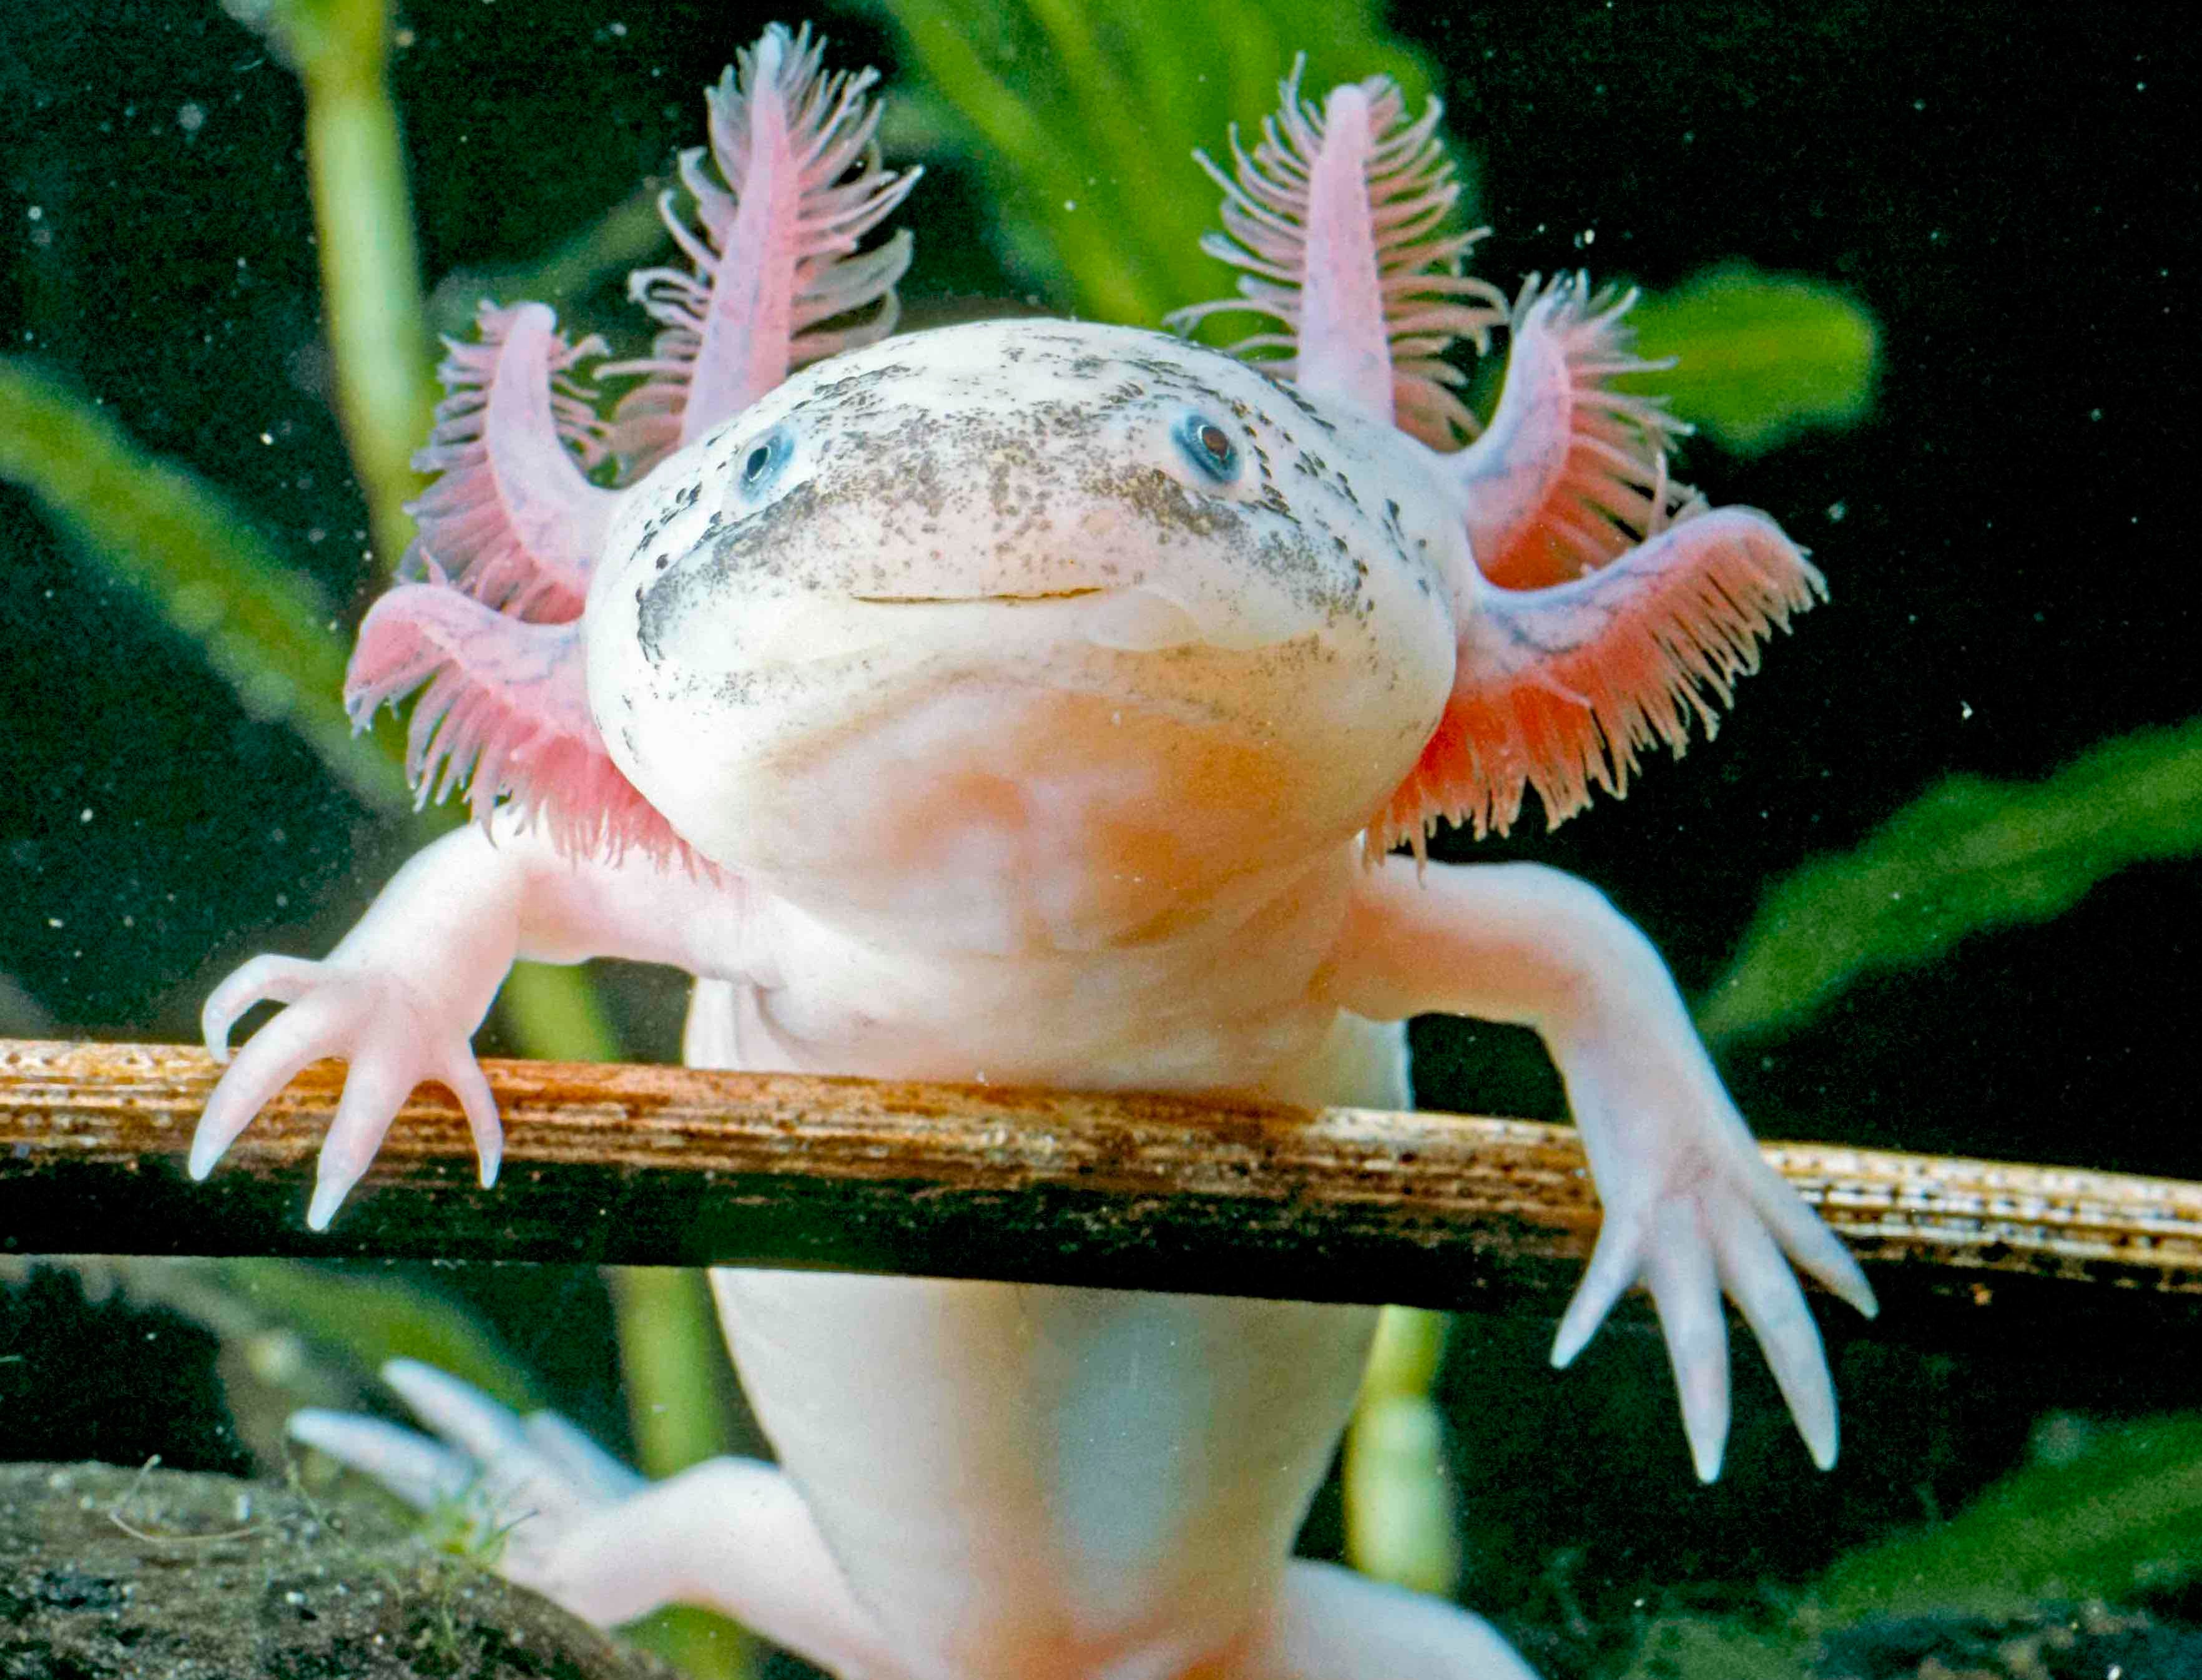 an axolotls, an amphibian that looks like they have a smile on their face and has pink fringed feelers around their head